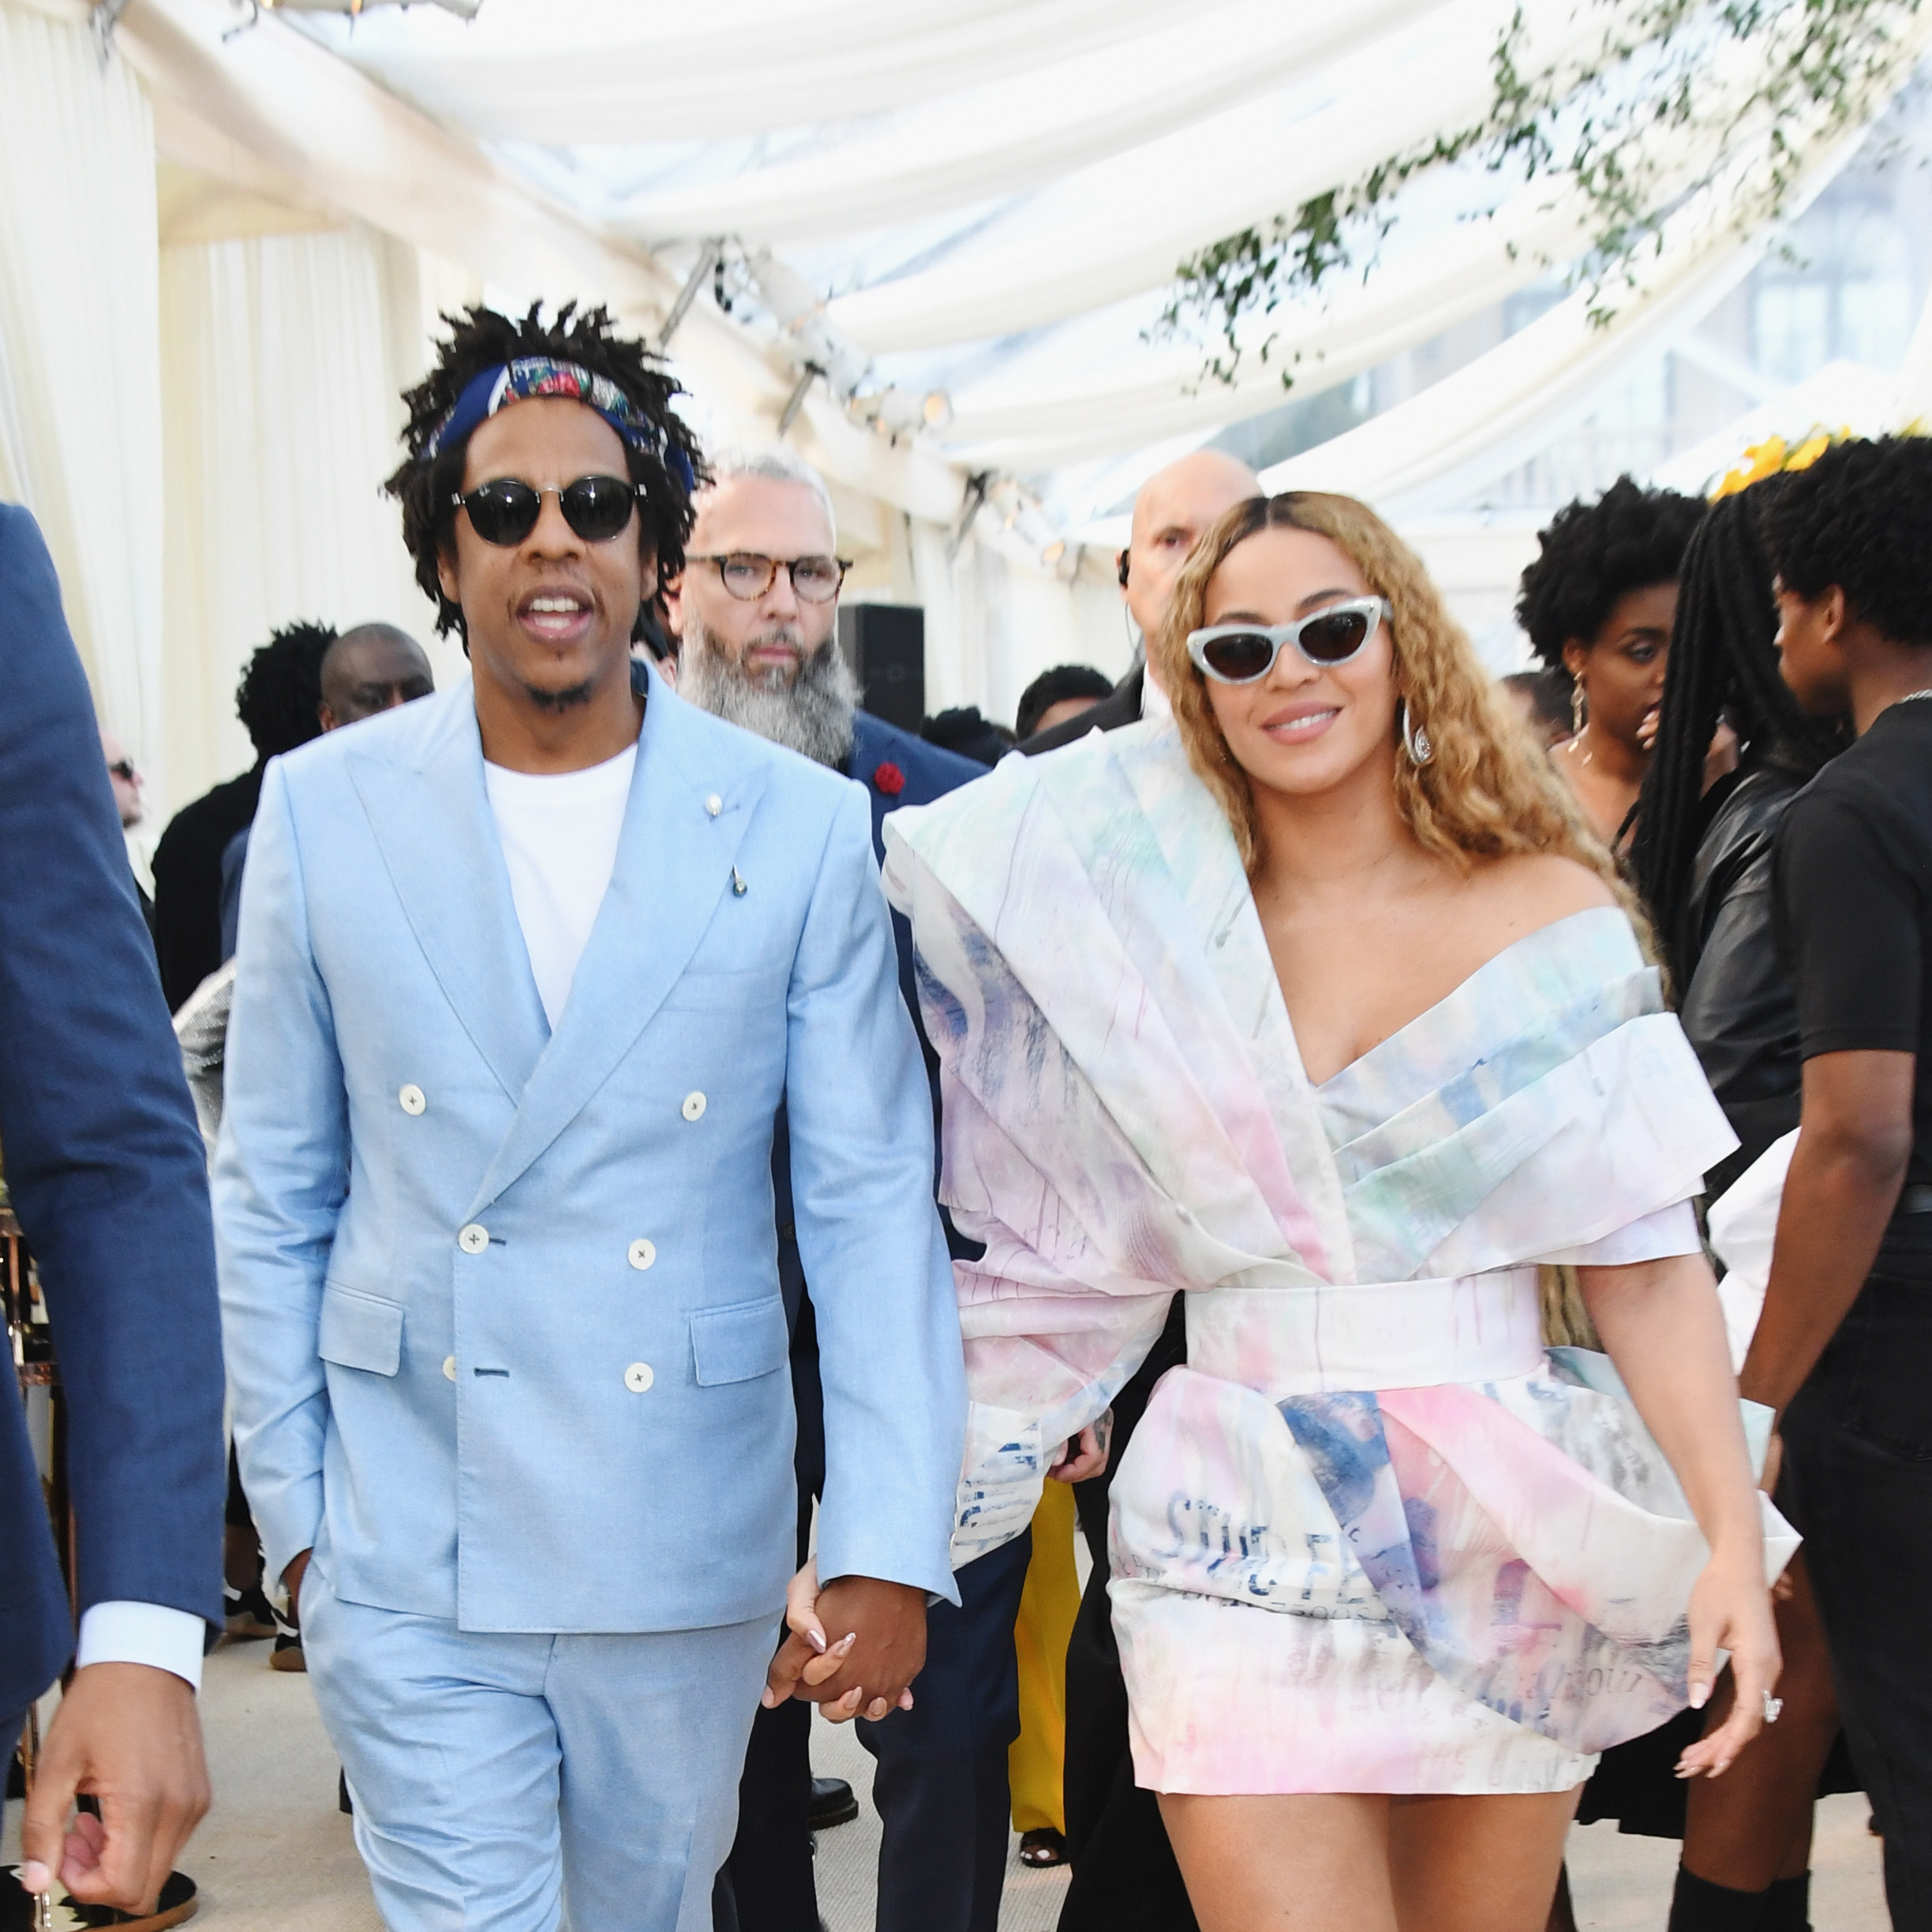 Jay-Z and Beyonce at the 2019 Roc Nation Brunch